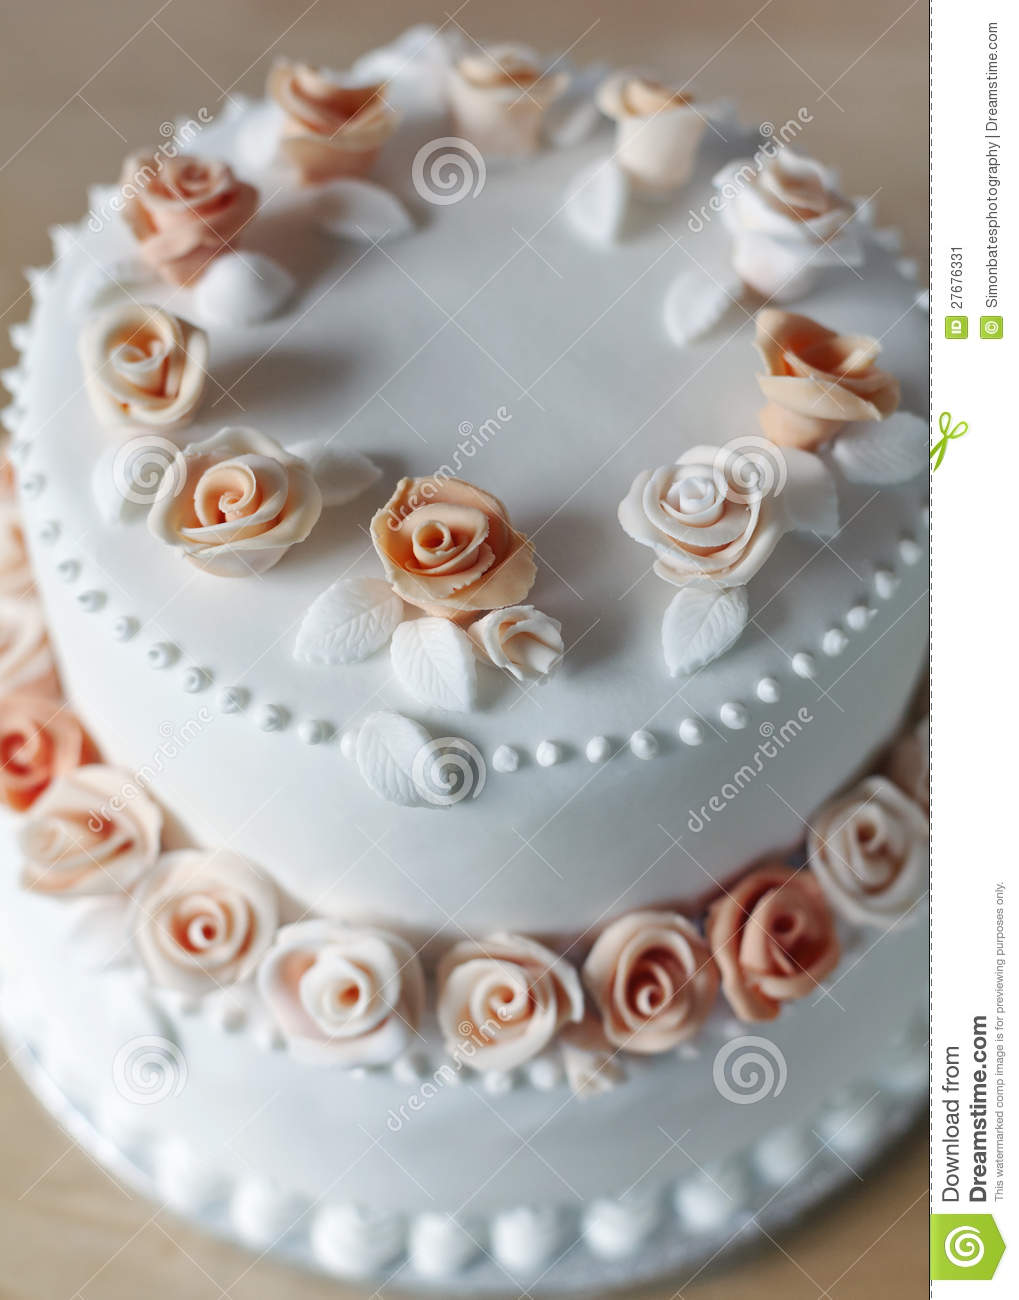 wedding cake decorated with rose petals wedding cake with decorations stock image image of 22365